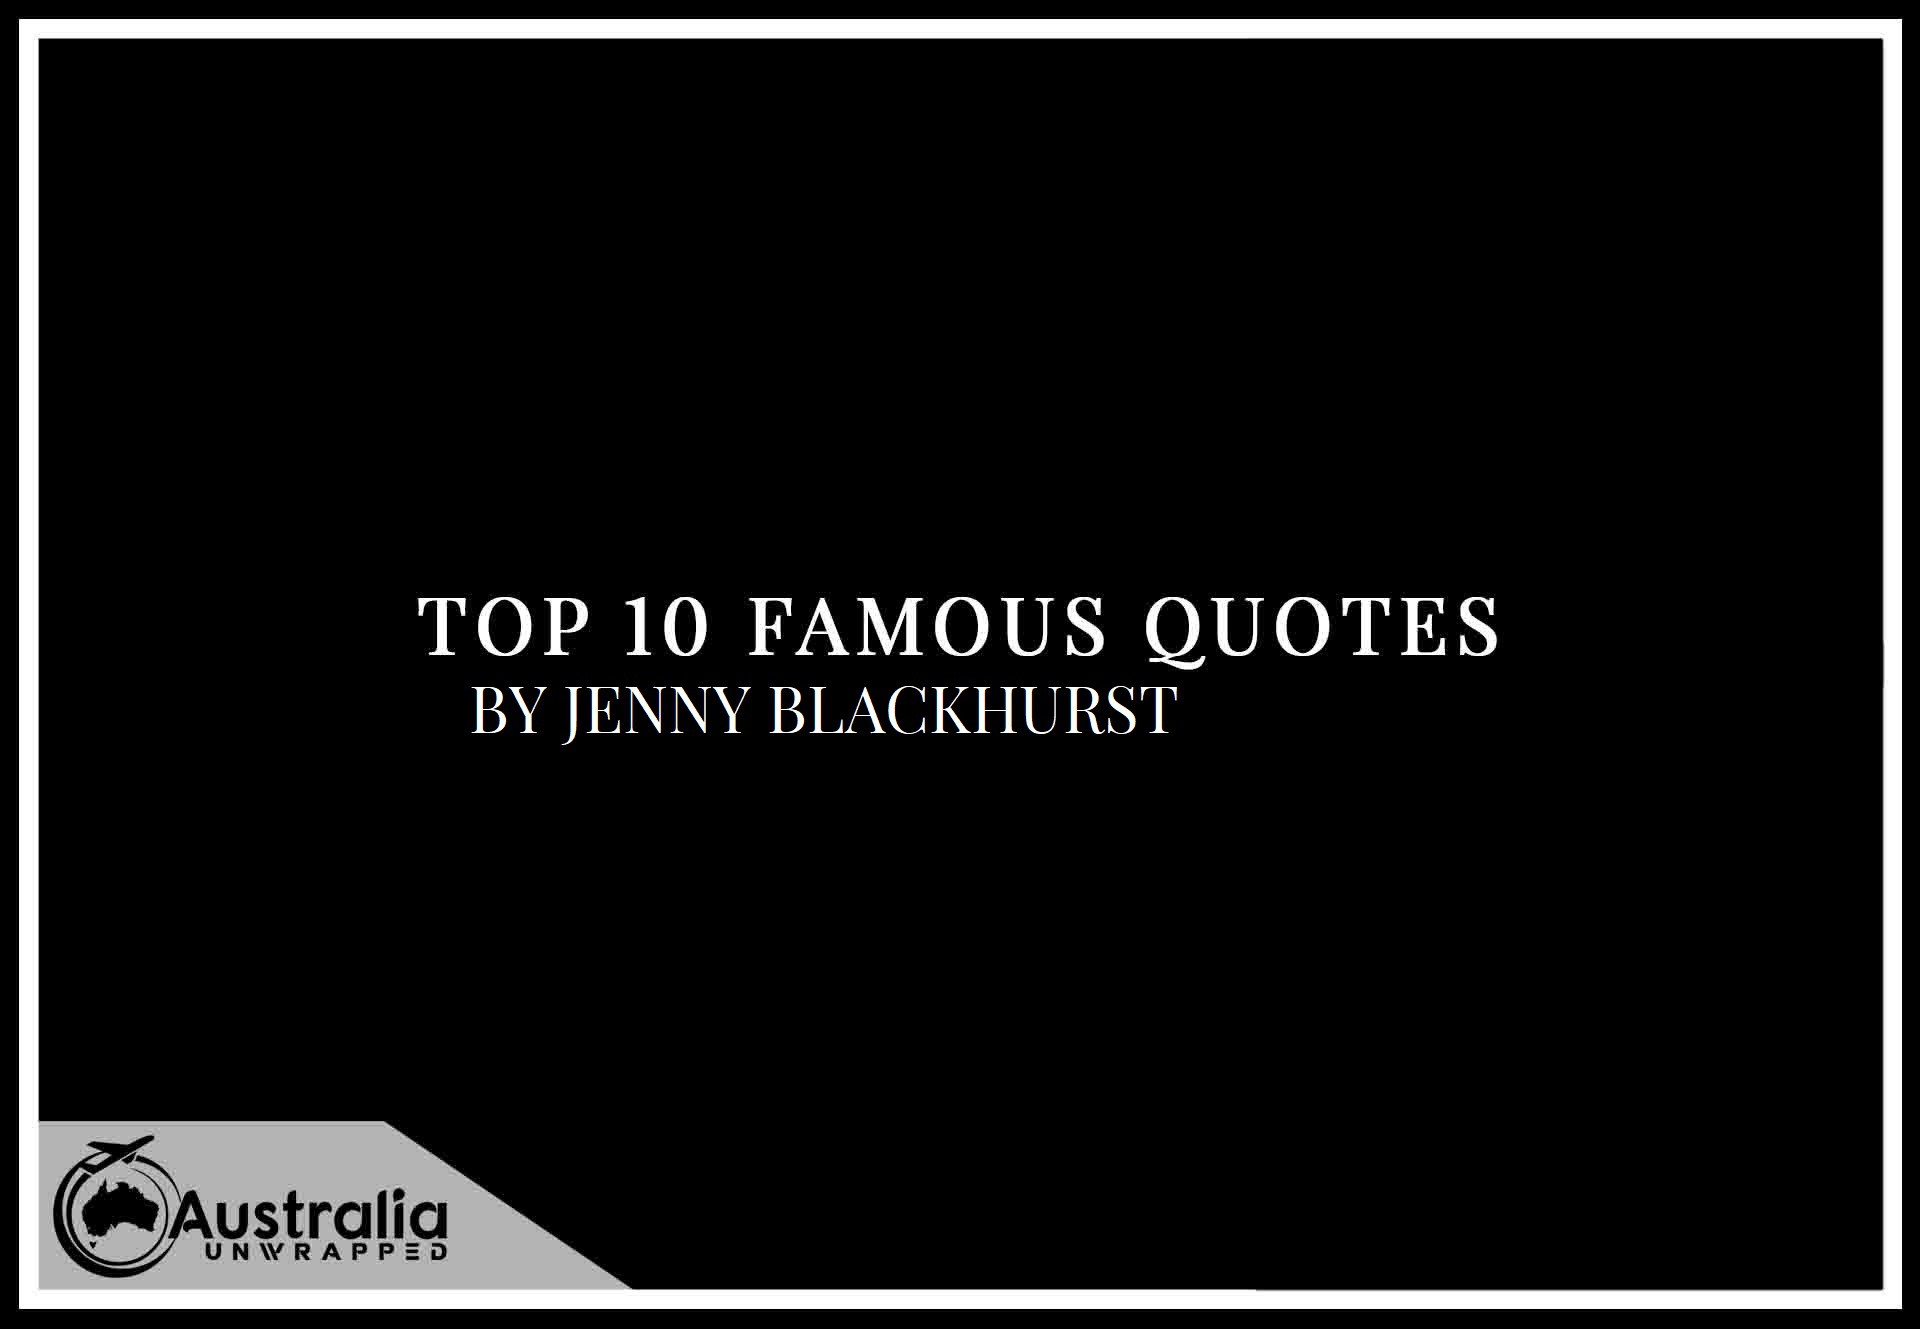 Top 10 Famous Quotes by Author Jenny Blackhurst